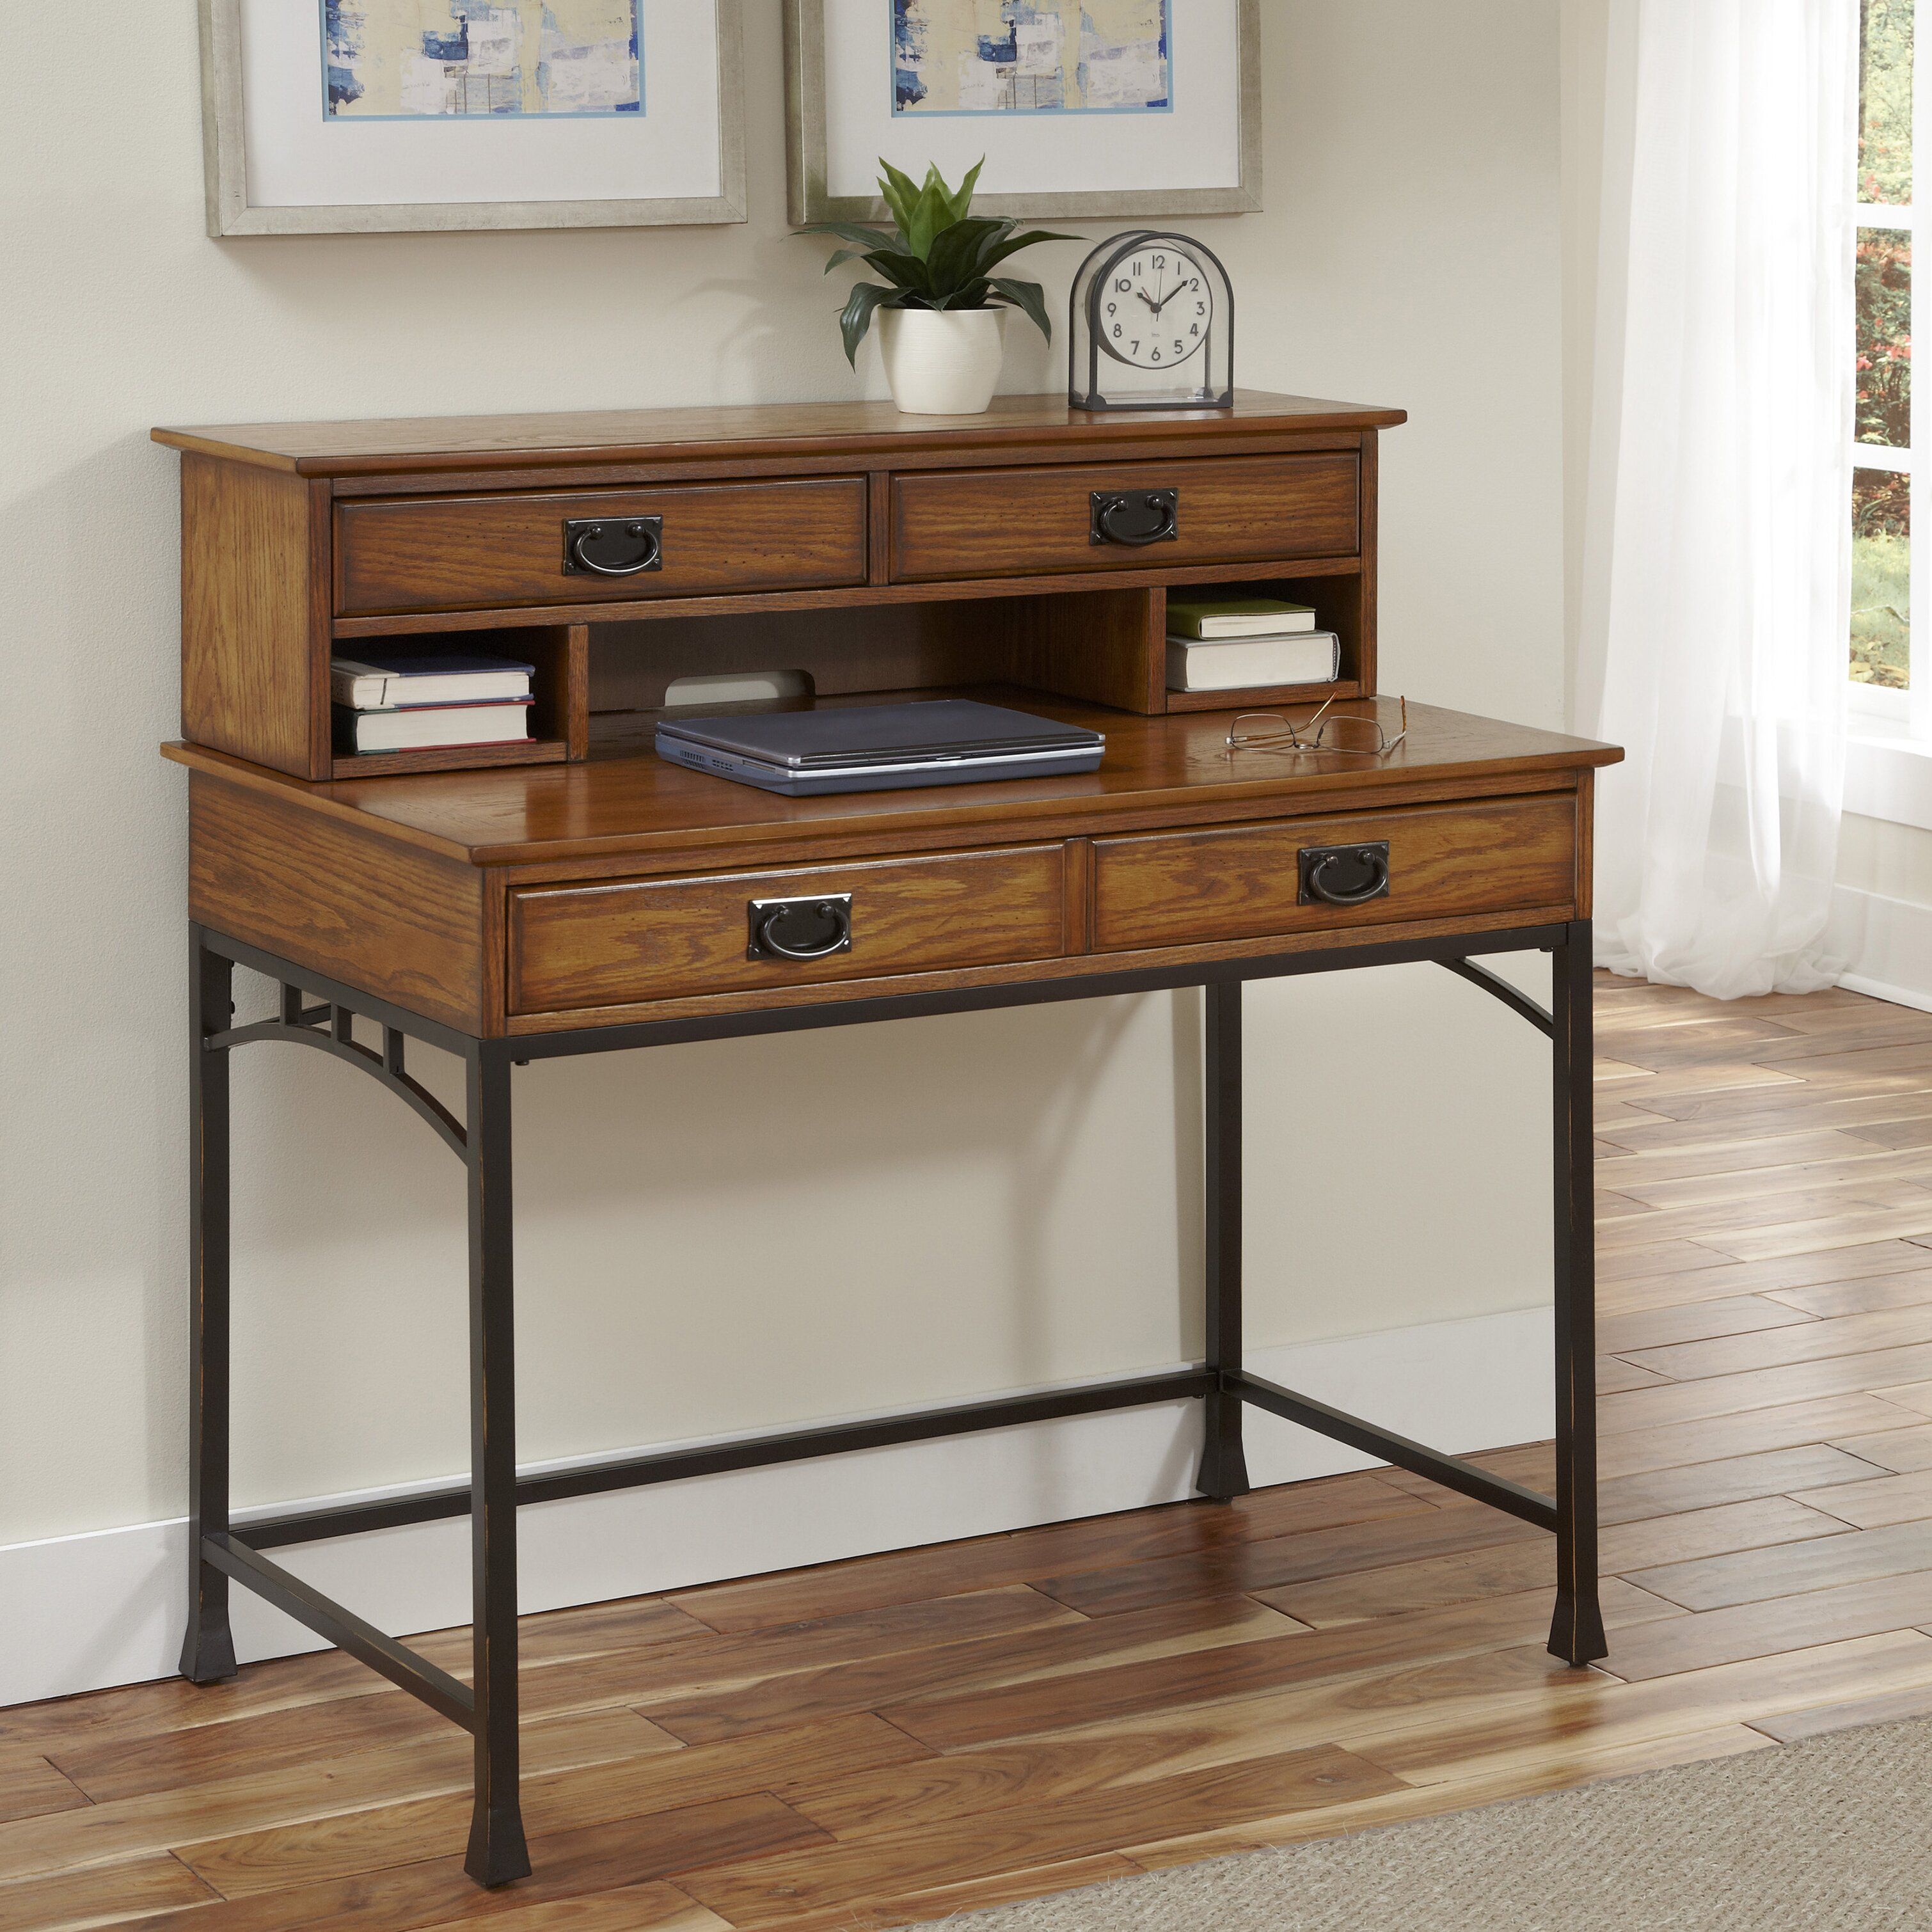 Home styles modern craftsman computer desk with hutch and keyboard tray reviews wayfair supply - Hutch style computer desk ...